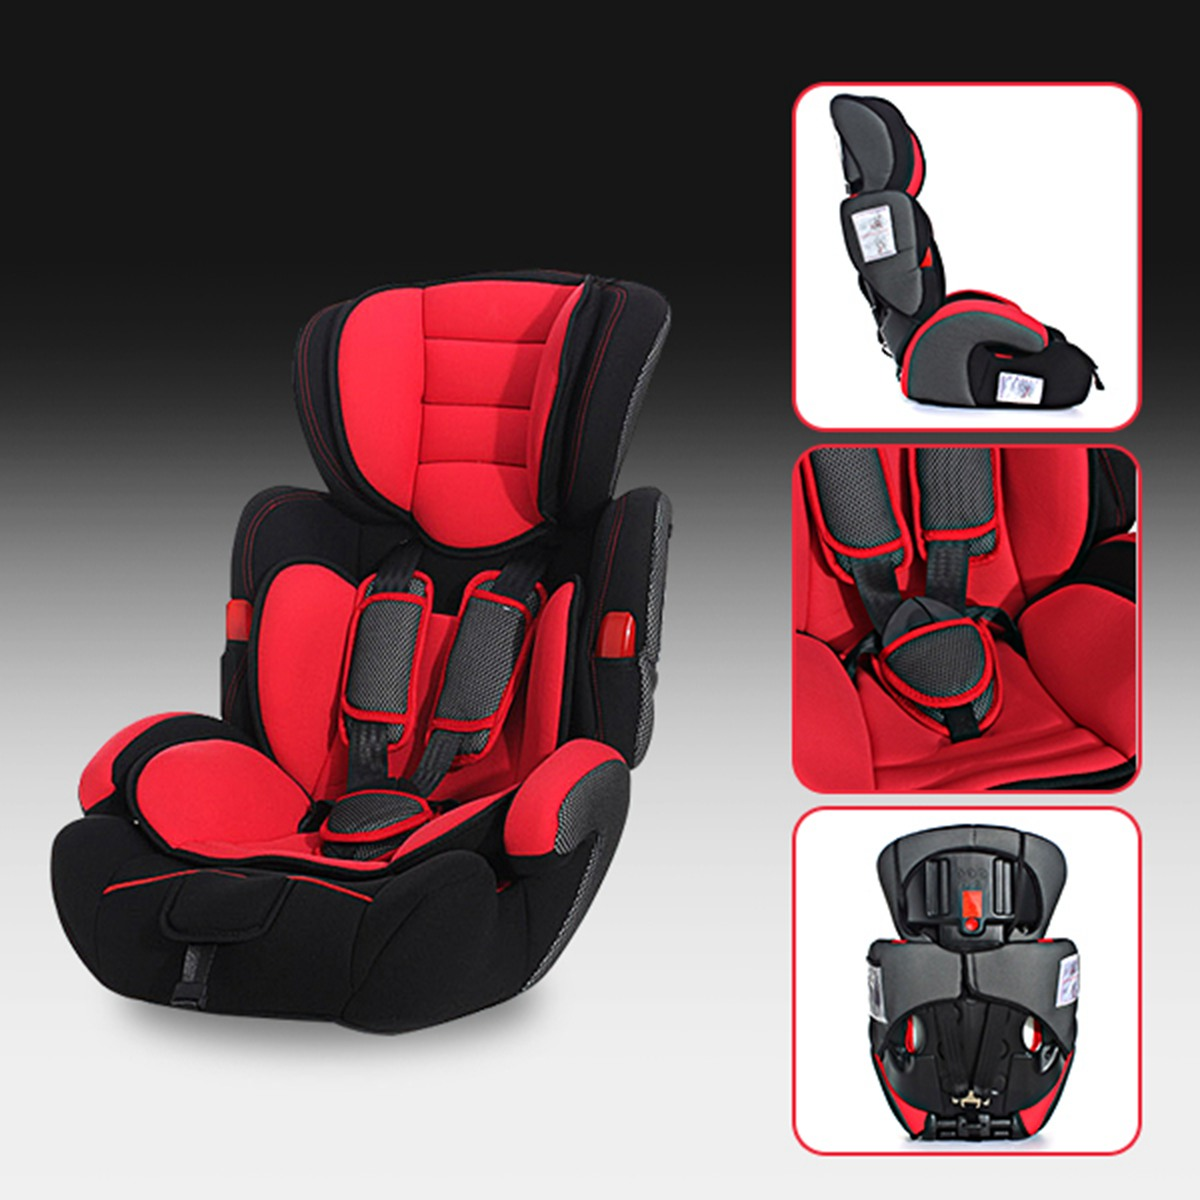 Red Baby Car Seat Convertible Baby Children Car Seat & Booster Seat